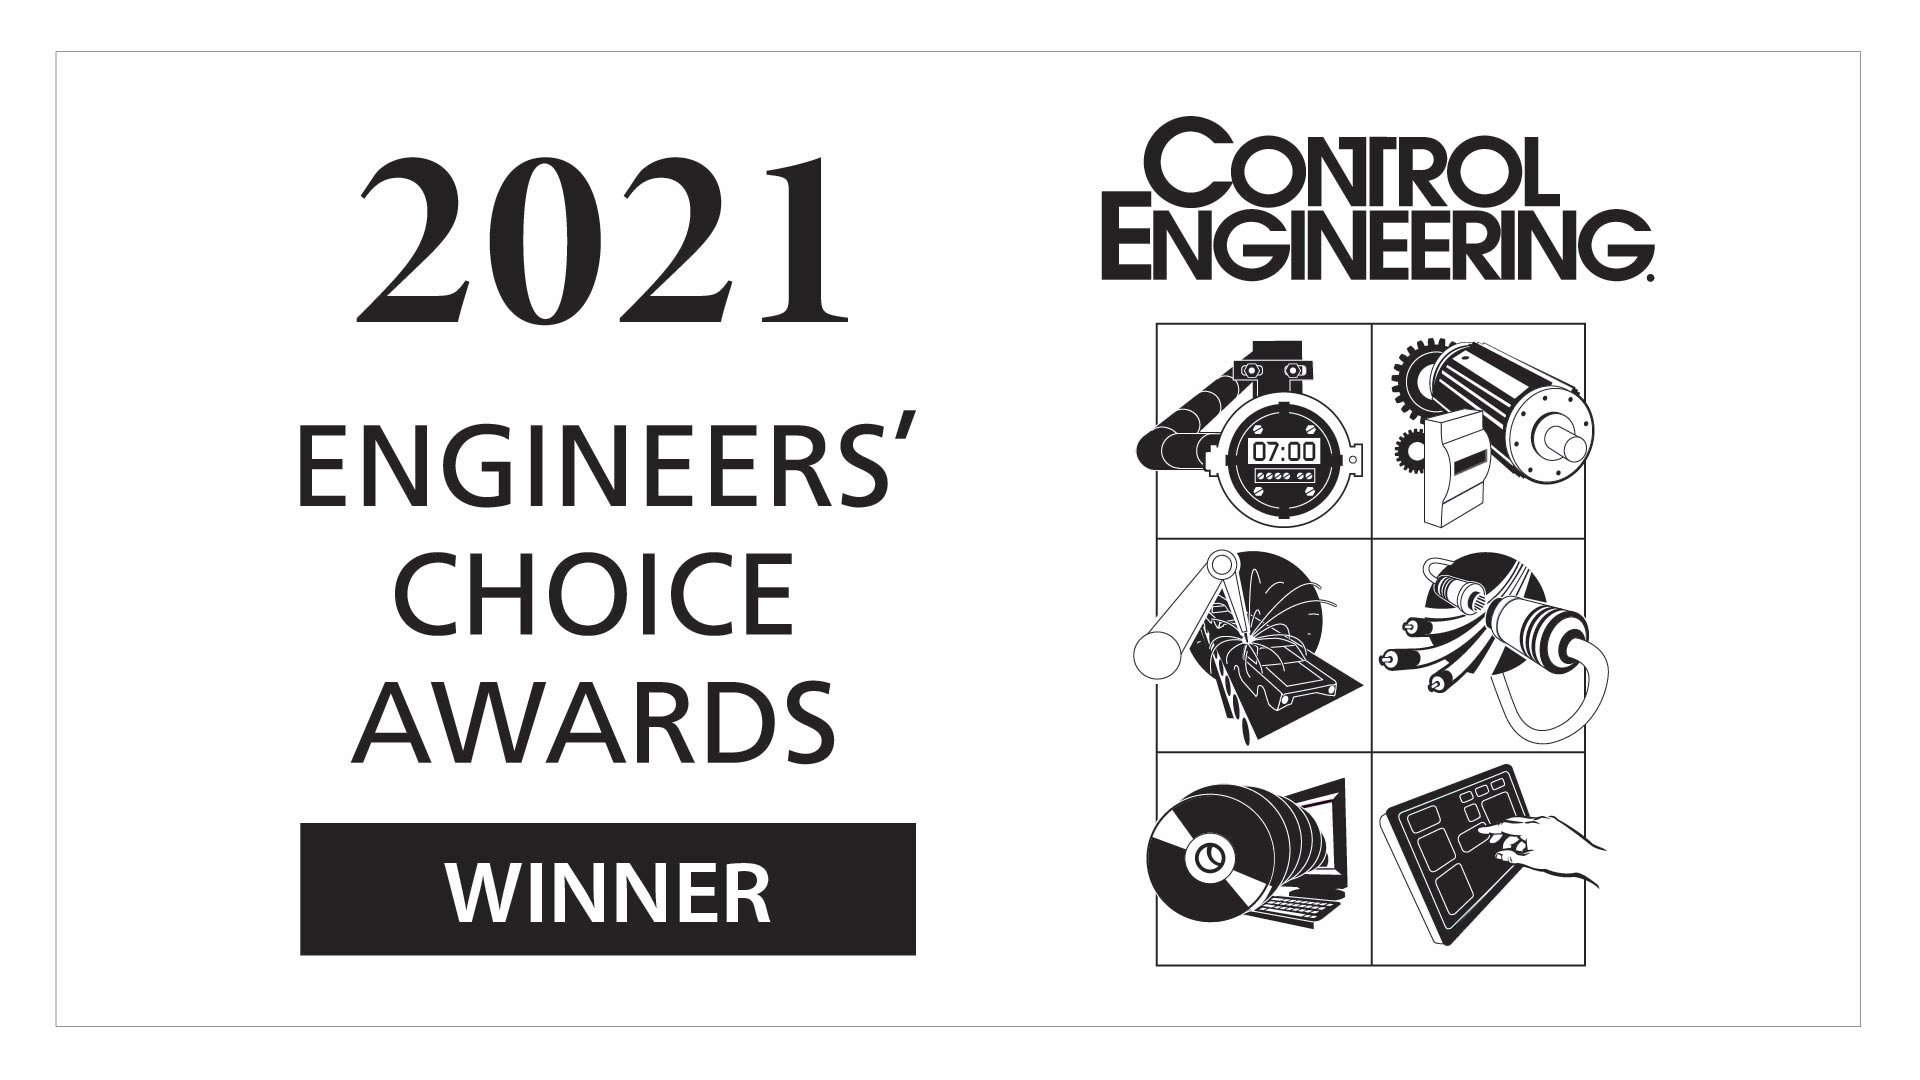 2021 Control Engineering Engineers' Choice Award Winner Logo